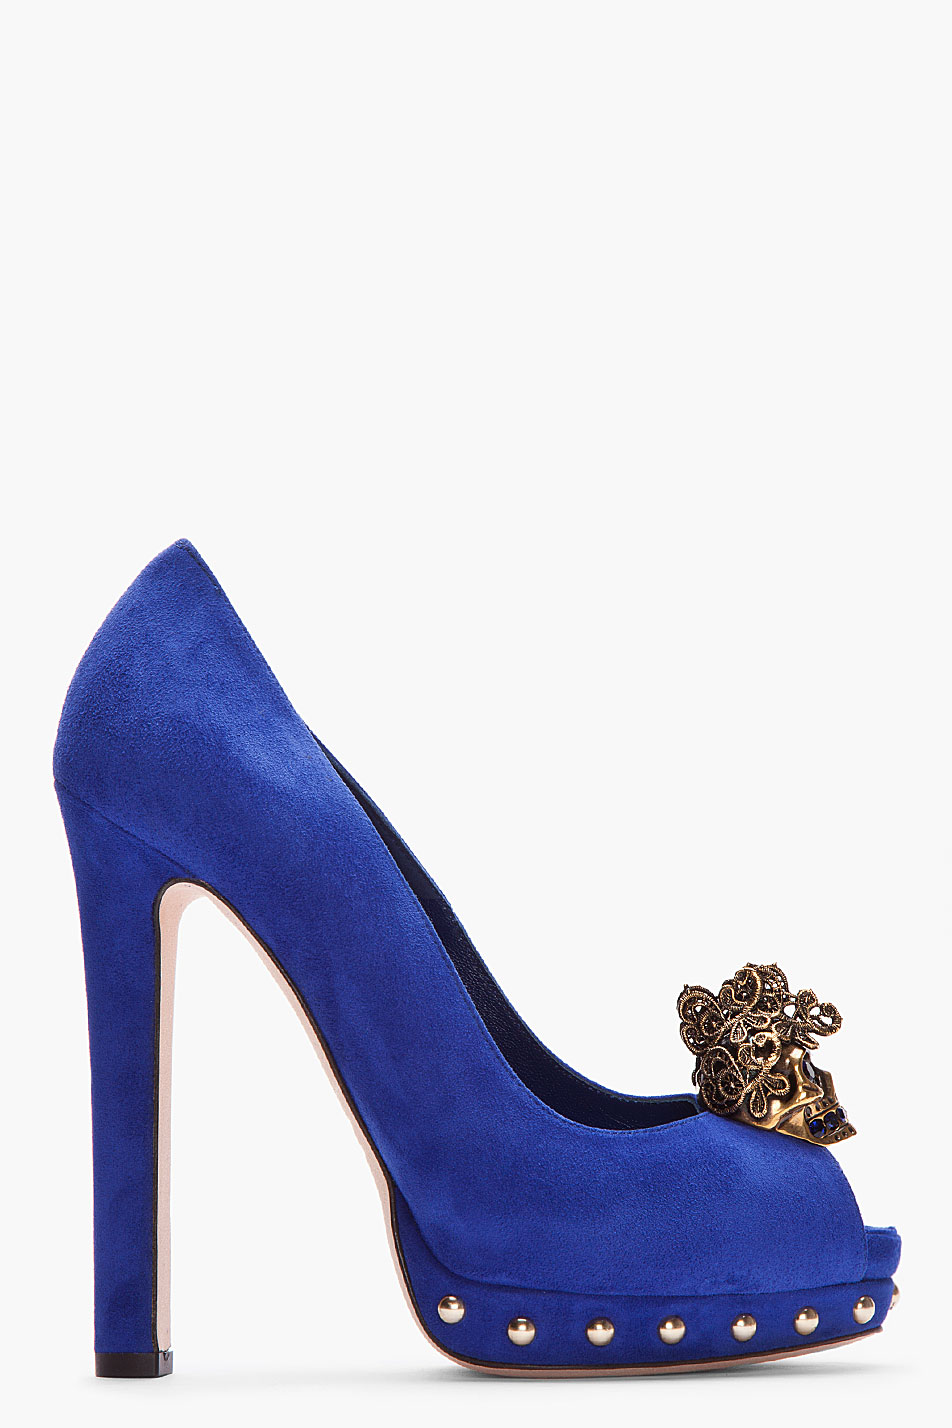 Alexander Mcqueen Royal Blue Suede Lace Skull Studded